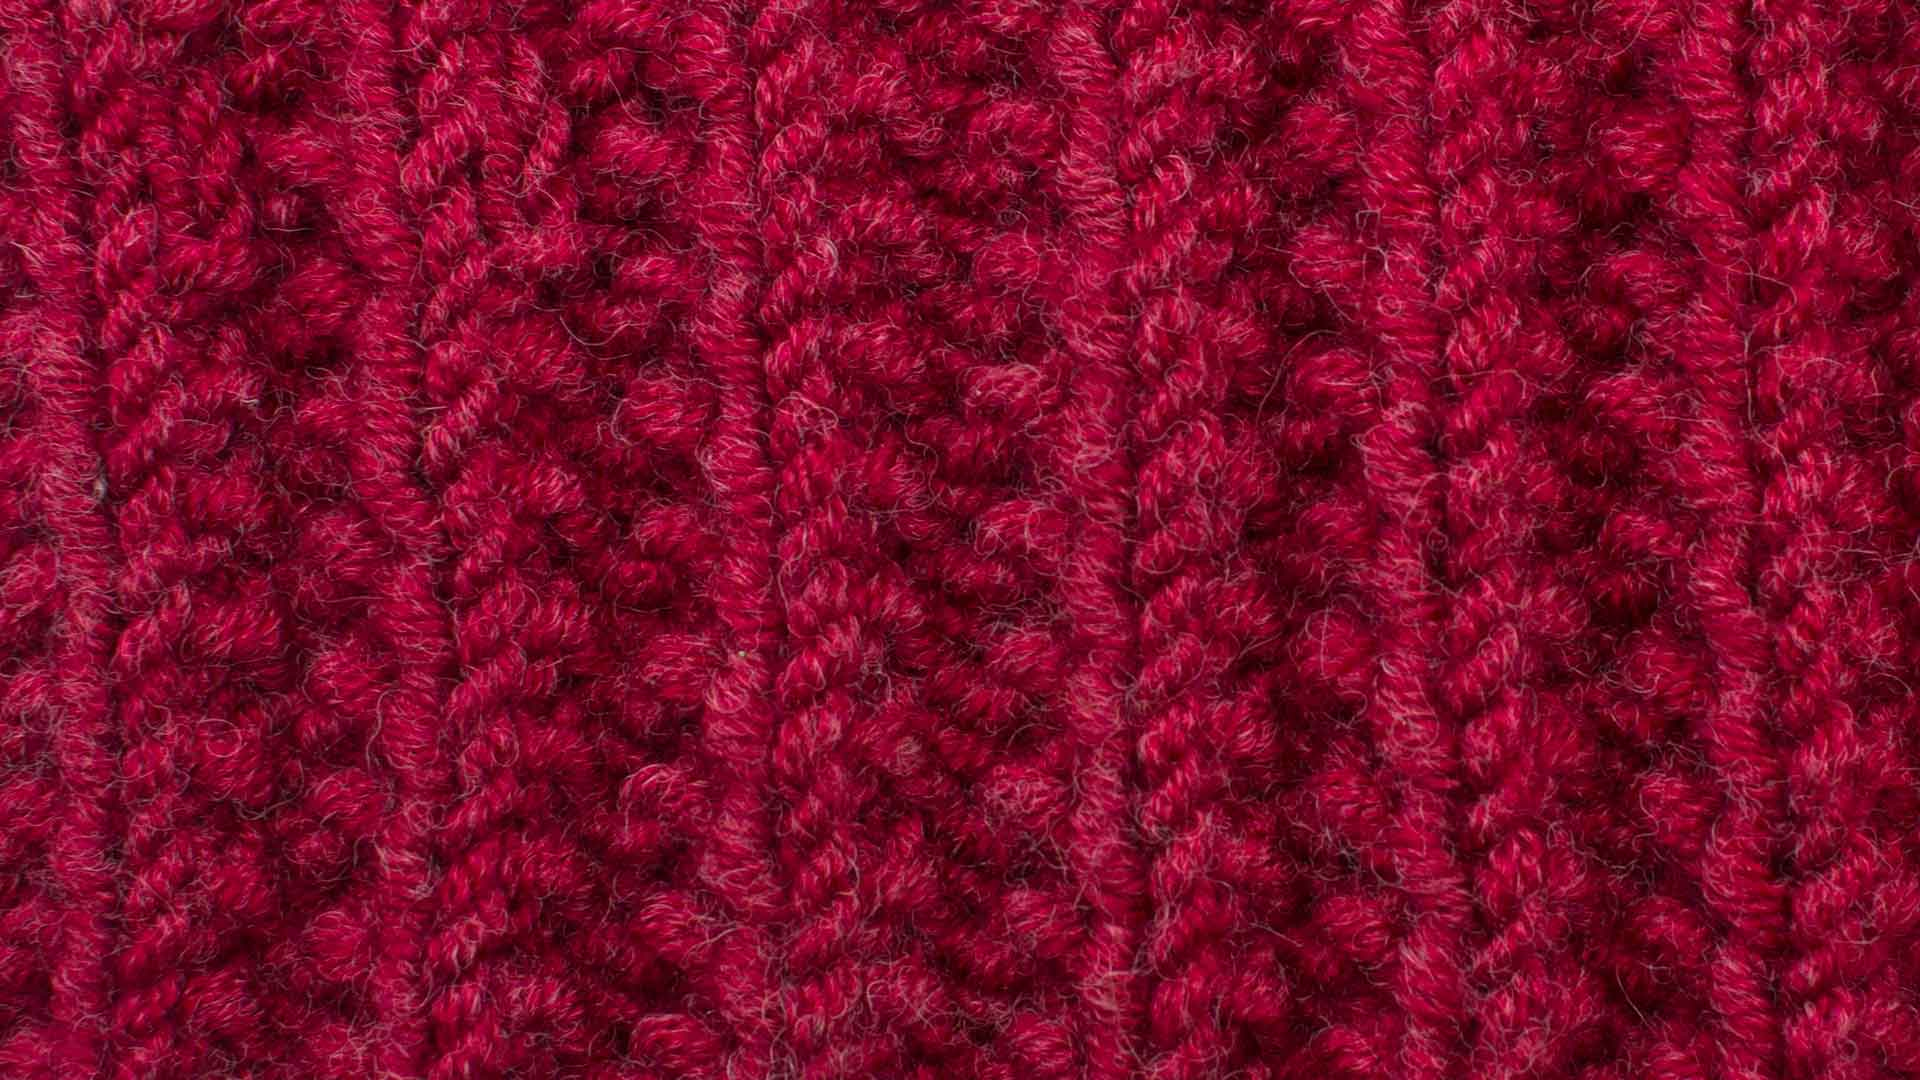 knitting stitches the mistake rib stitch :: knitting stitch #529 dijrjse